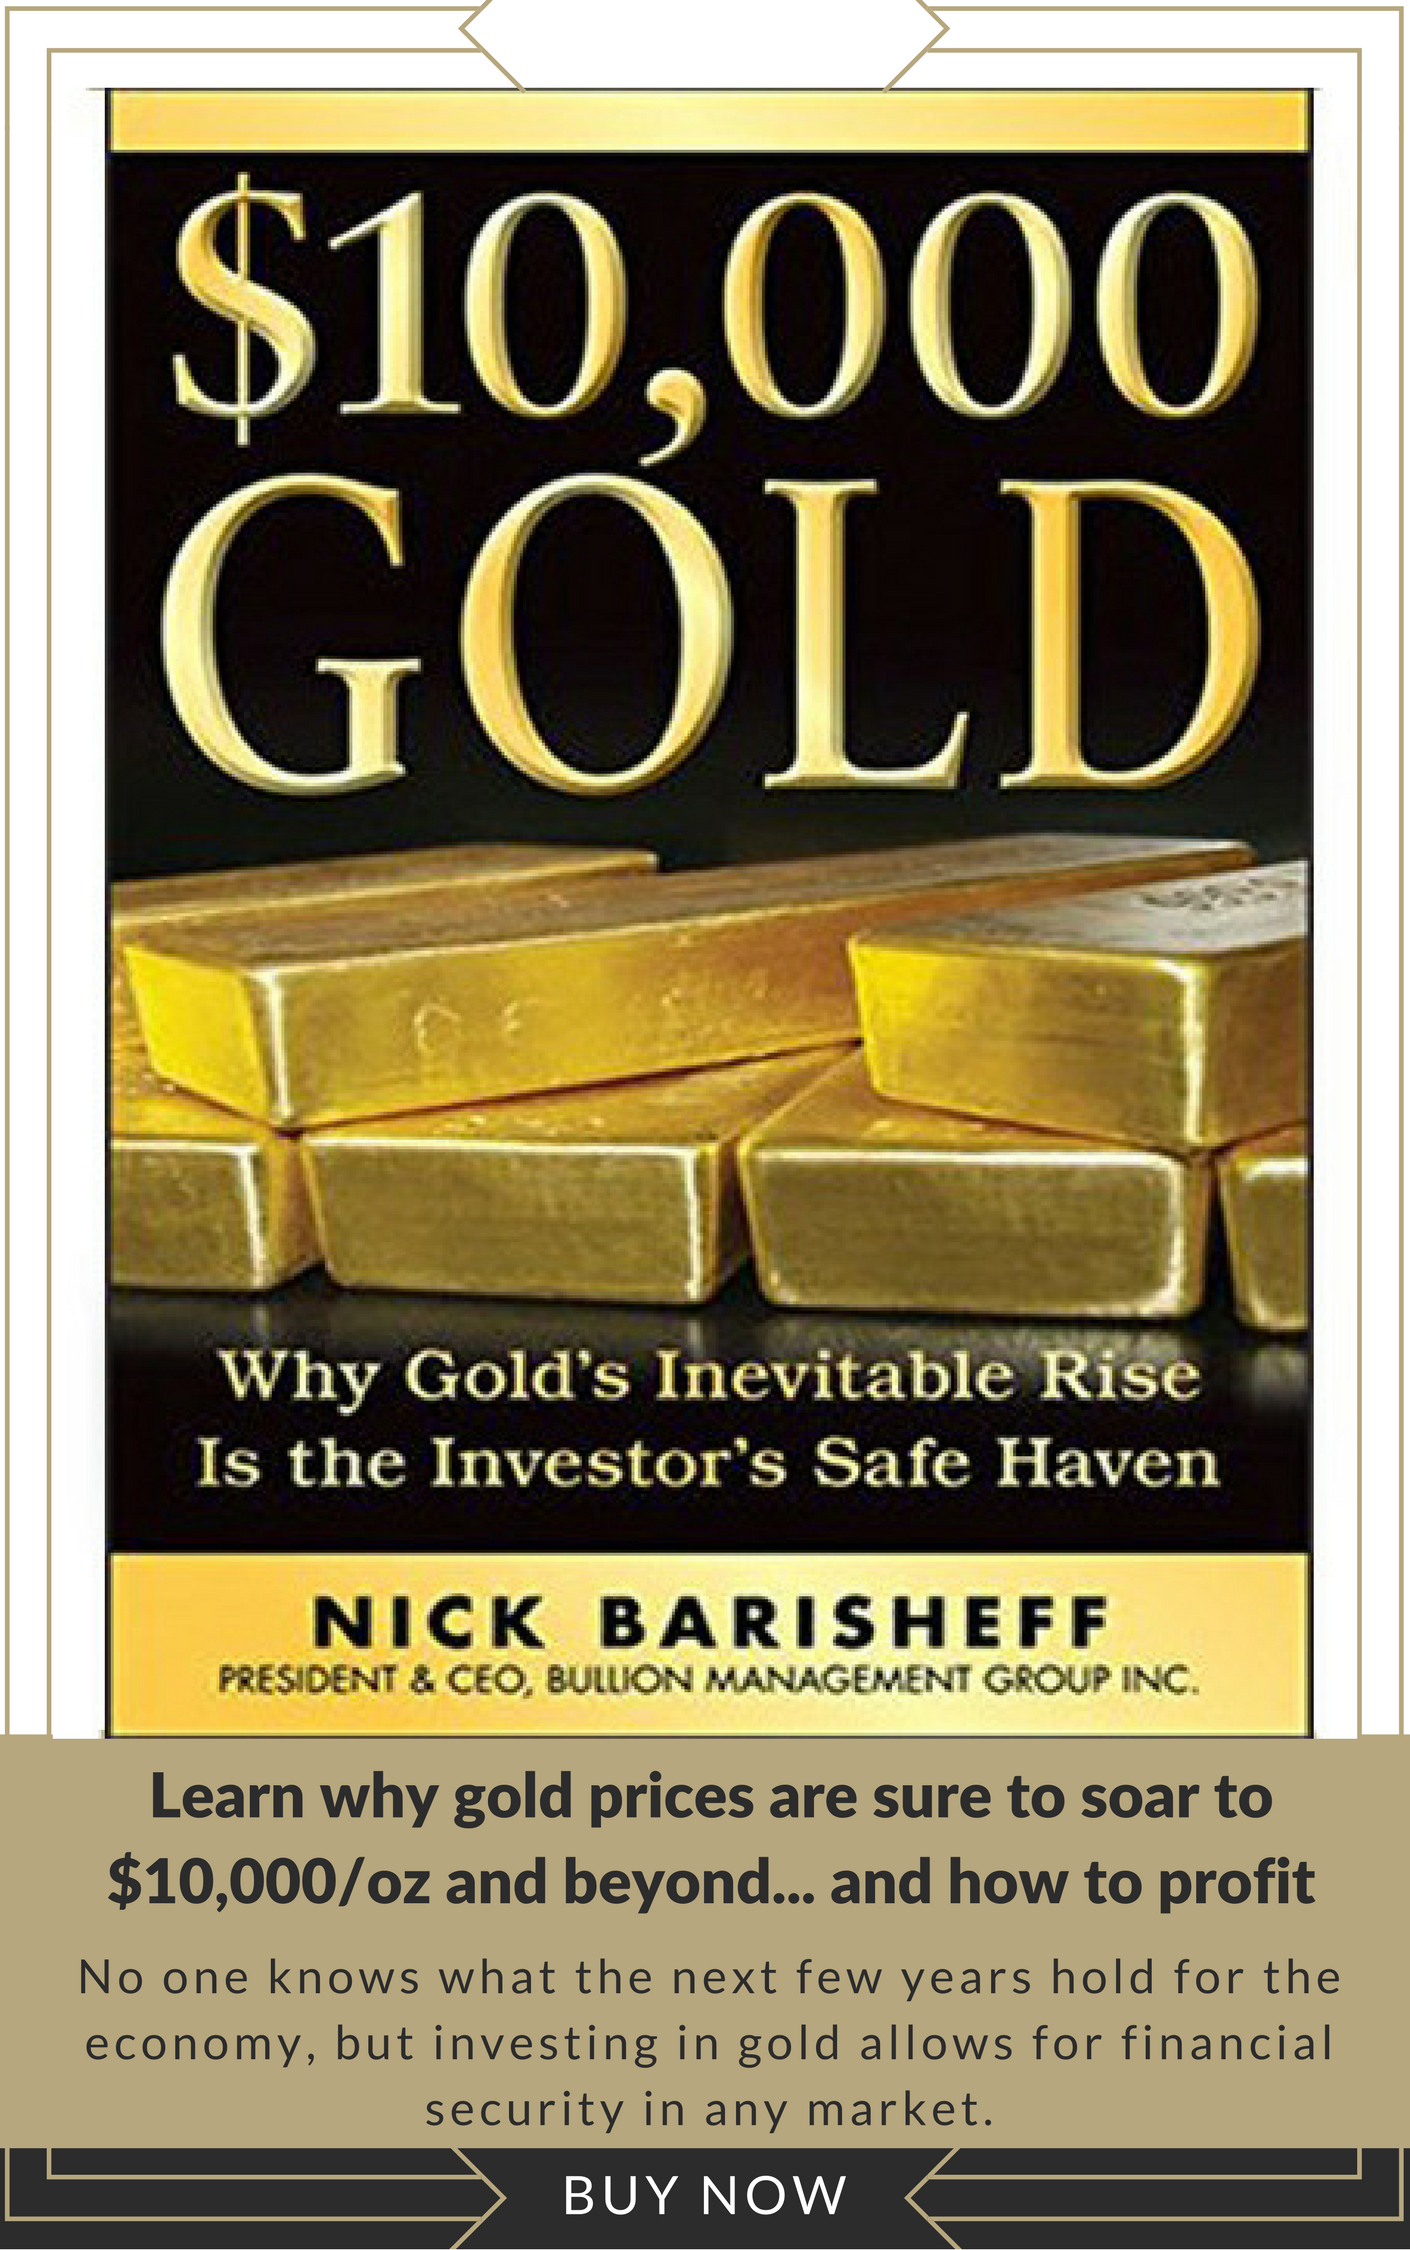 Order Nick Barisheff's $10,000 Gold Book Now!